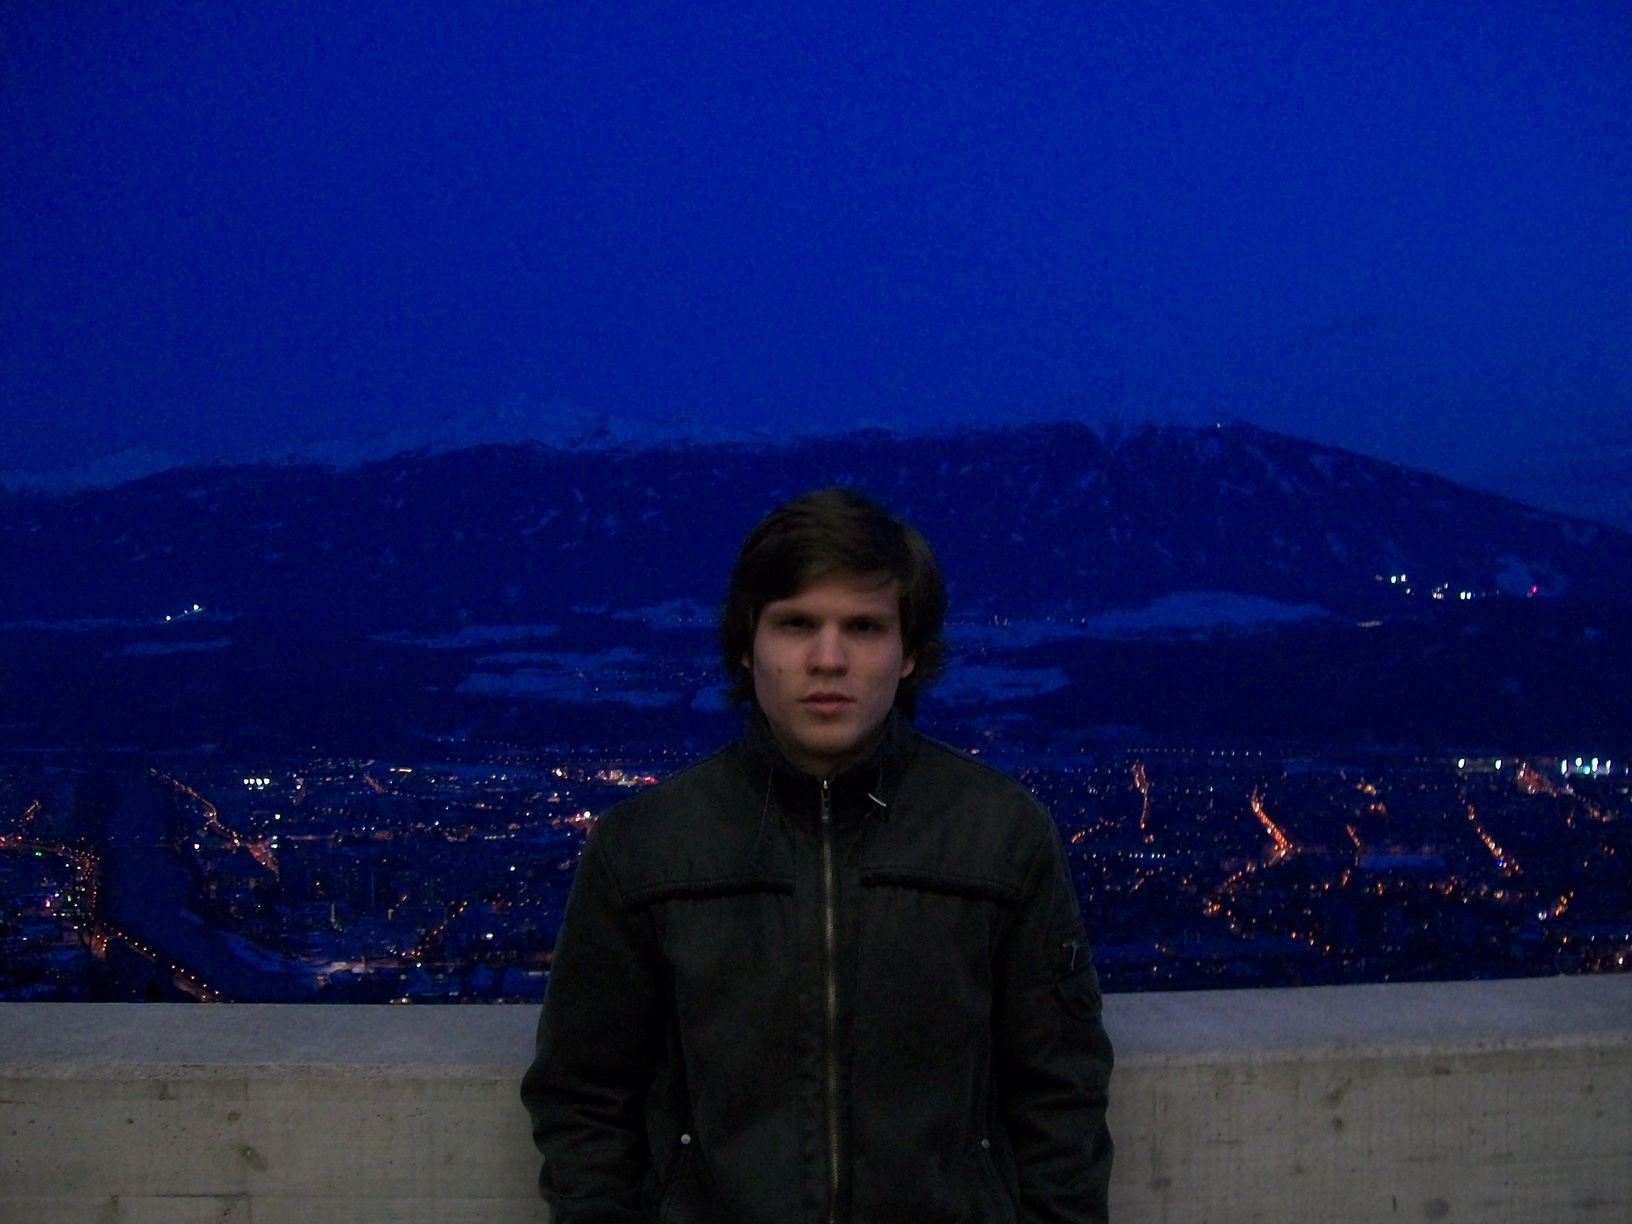 Petr looking cool with a night-view of Innsbruck behind him.